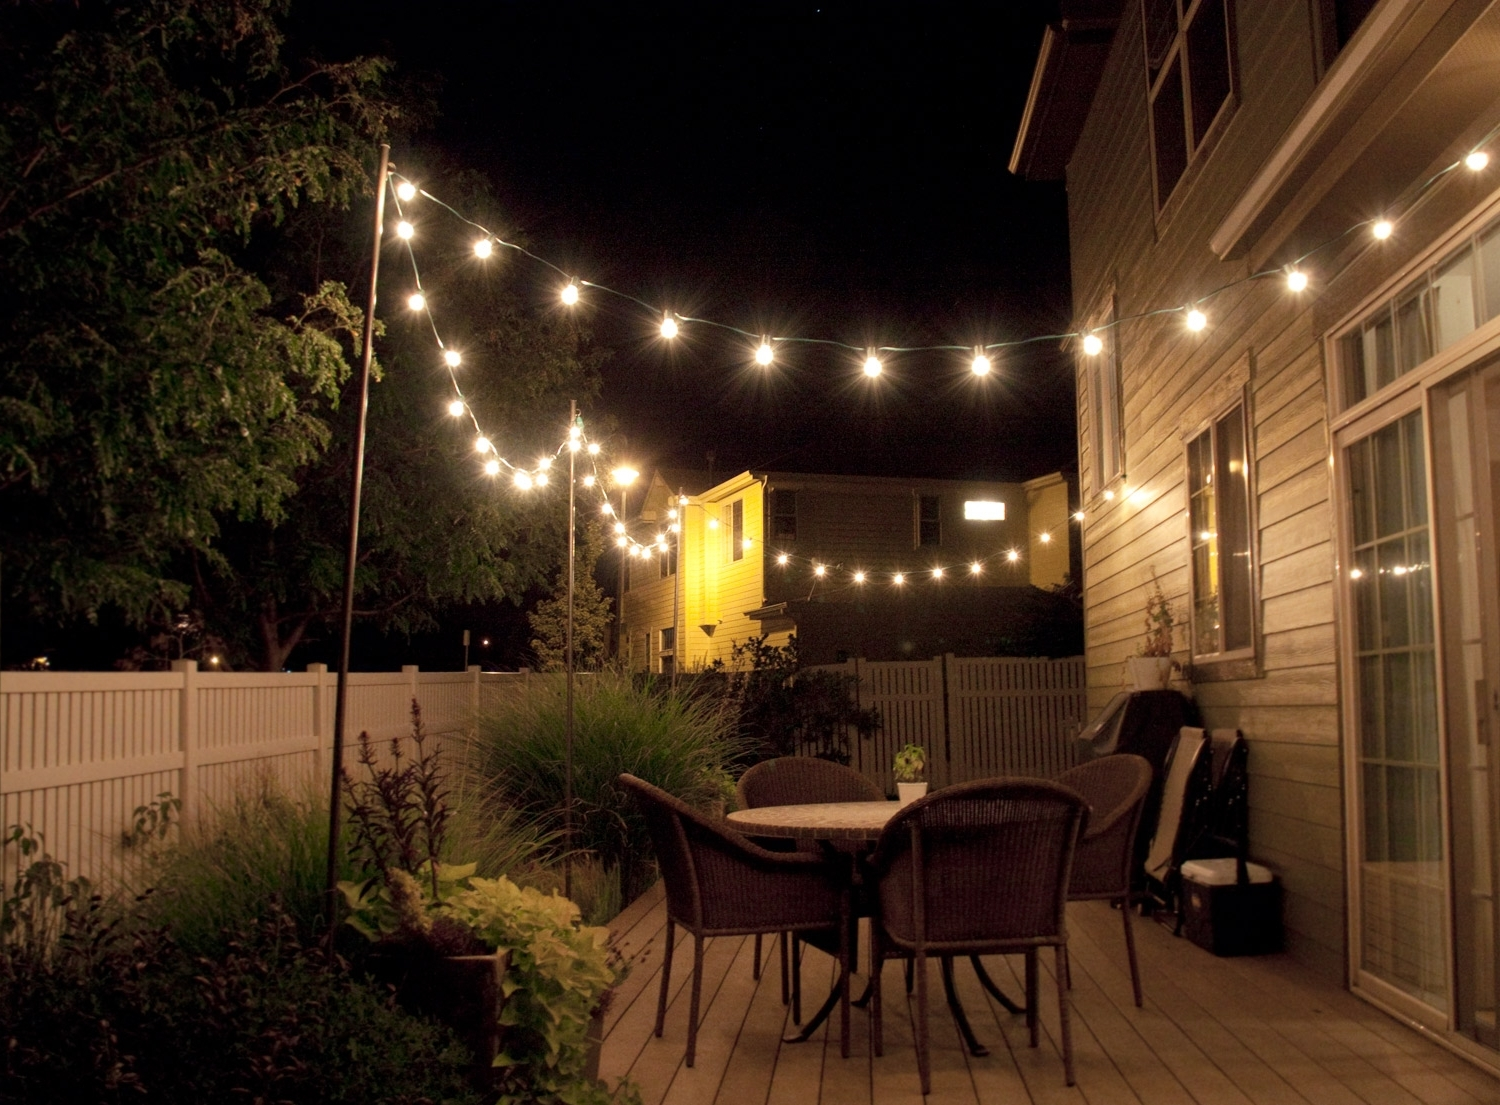 Outdoor Lanterns With Battery Operated With Regard To Well Known Battery Operated Lights For Outdoor Wedding – Outdoor Lighting Ideas (View 15 of 20)